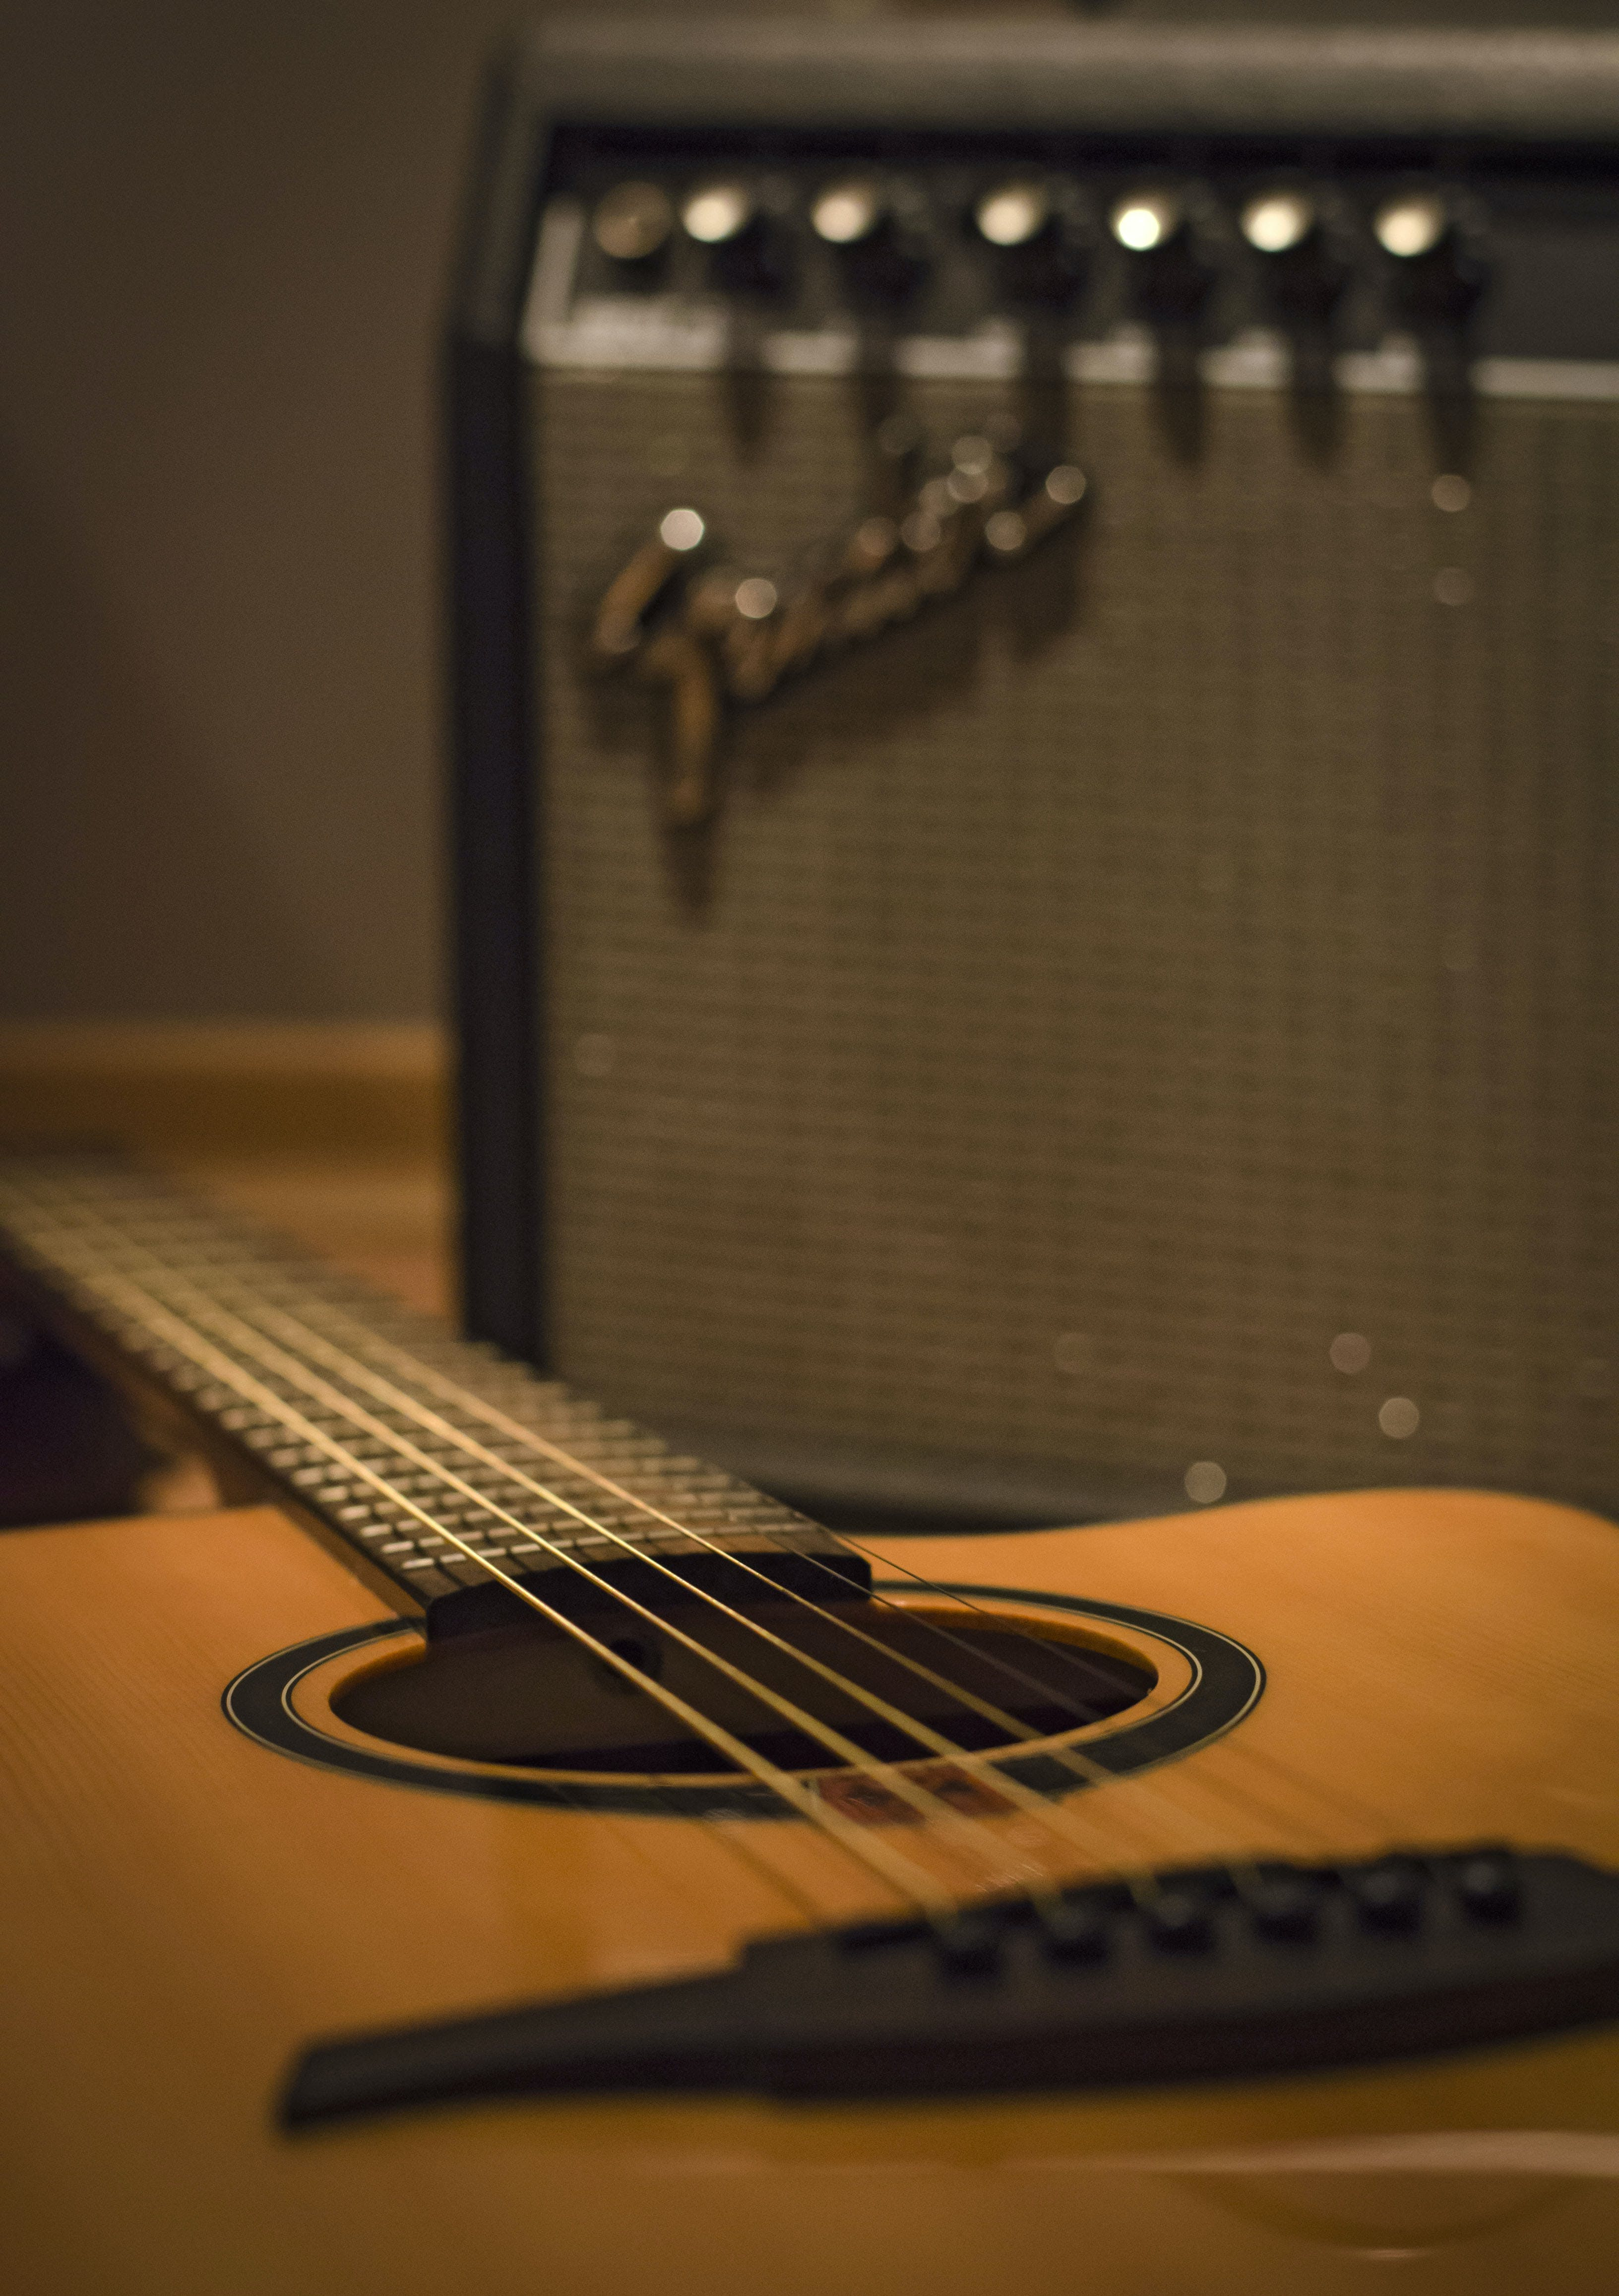 Free stock photo of acoustic guitar